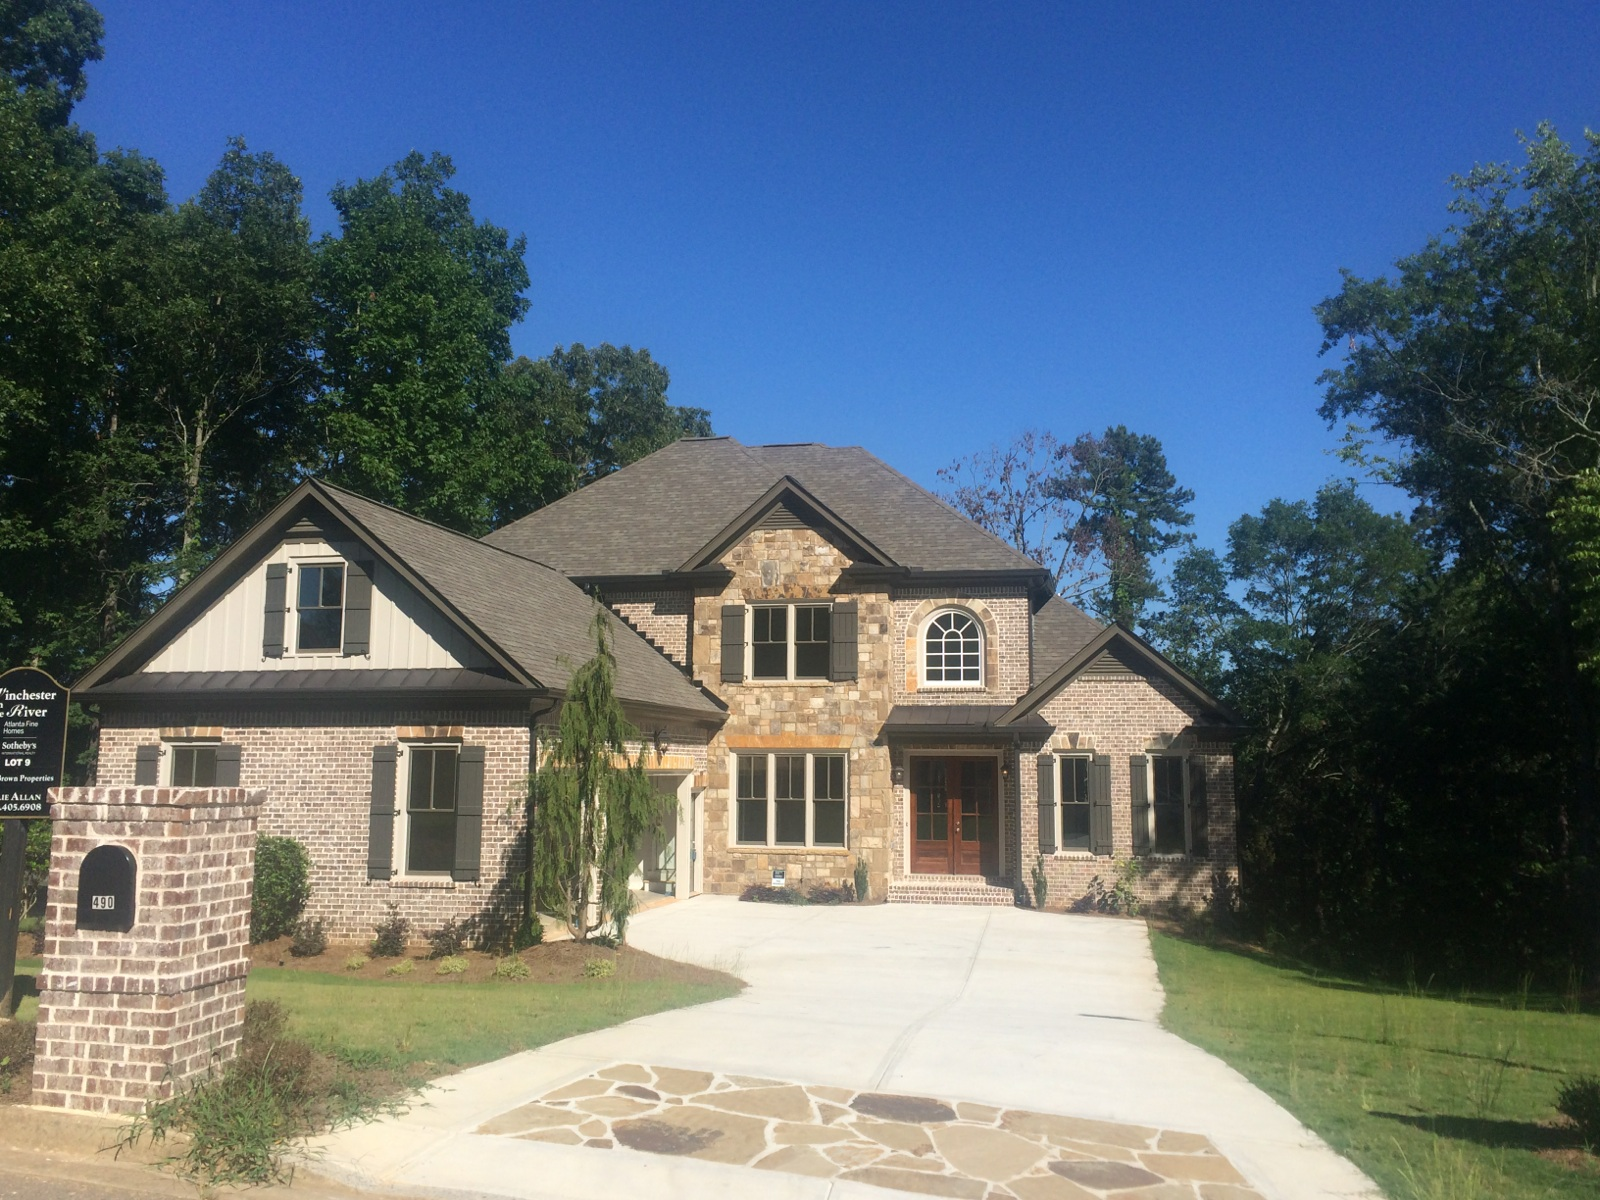 Casa Unifamiliar por un Venta en New Construction in Lambert High School District 490 Overlook Mountain Drive Suwanee, Georgia, 30024 Estados Unidos